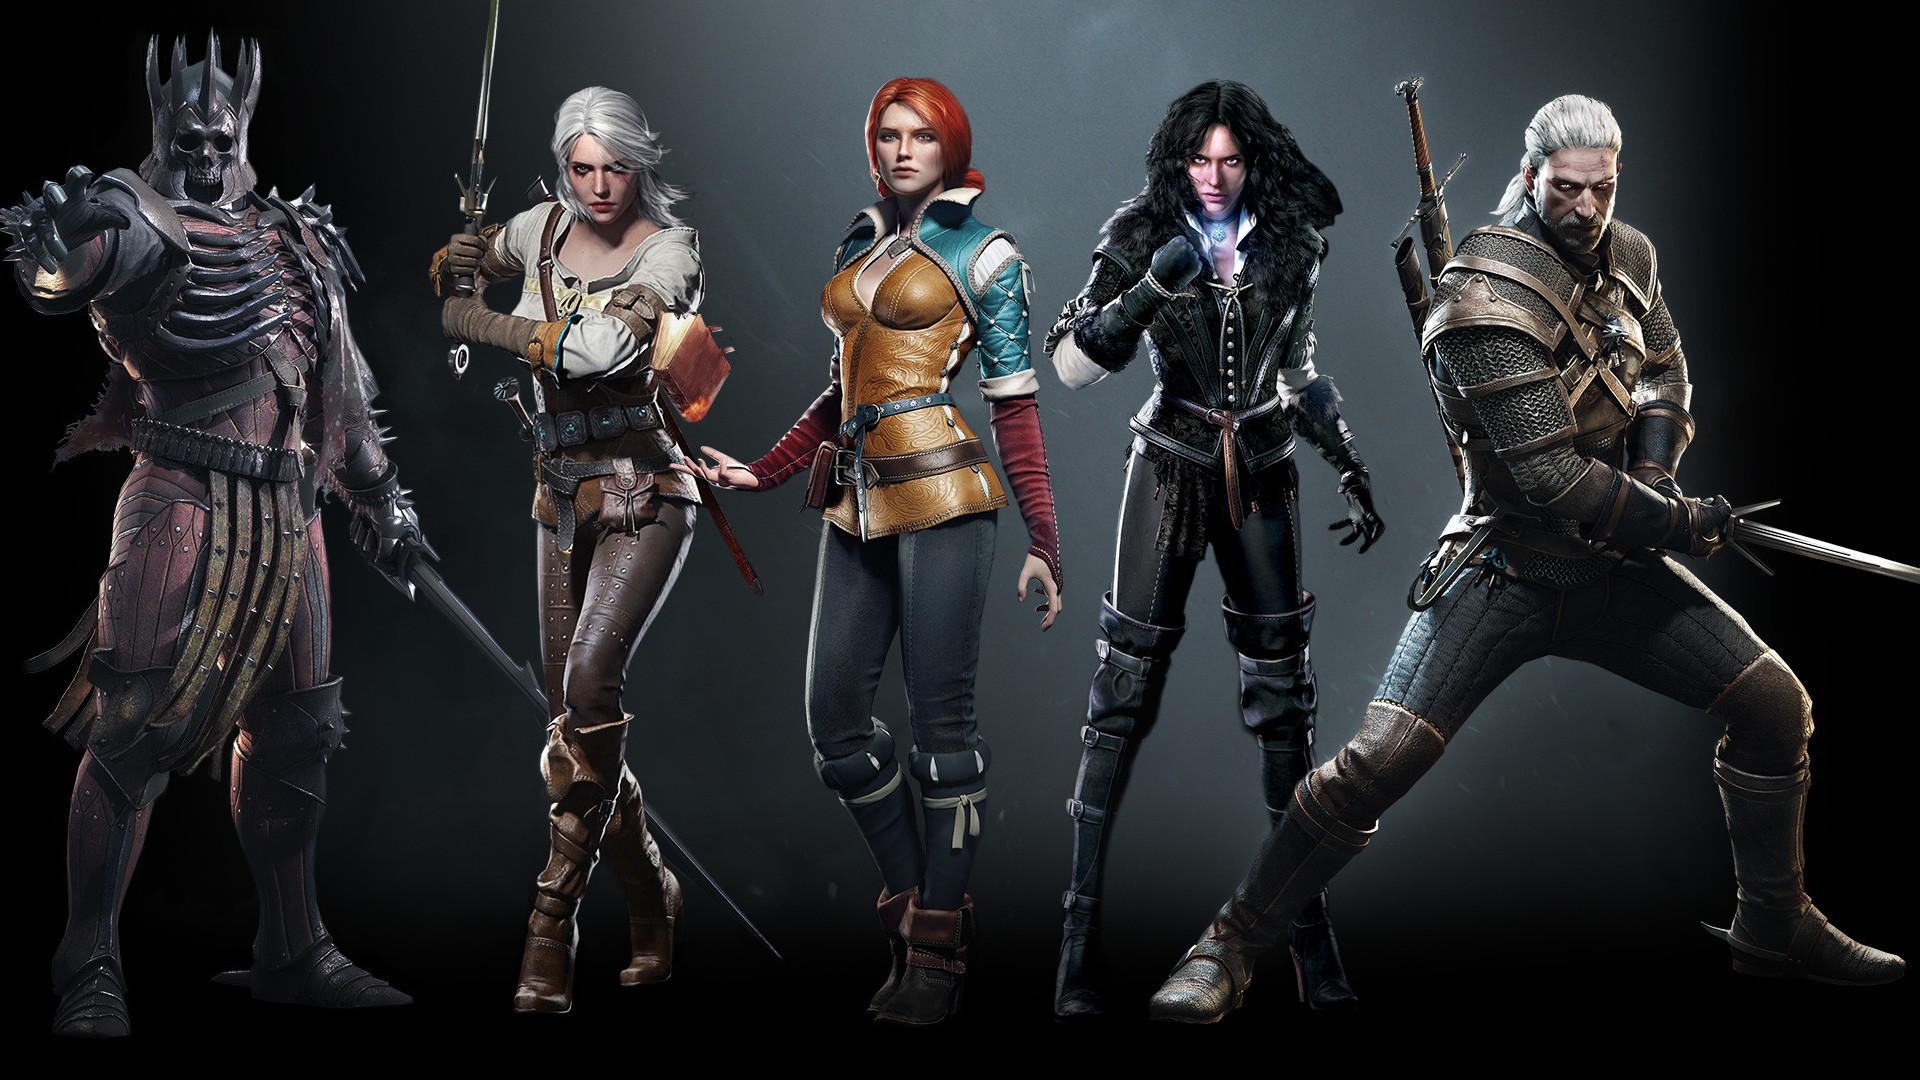 The Witcher 3 Wild hunt Yennefer wallpapers (89 Wallpapers) – HD Wallpapers